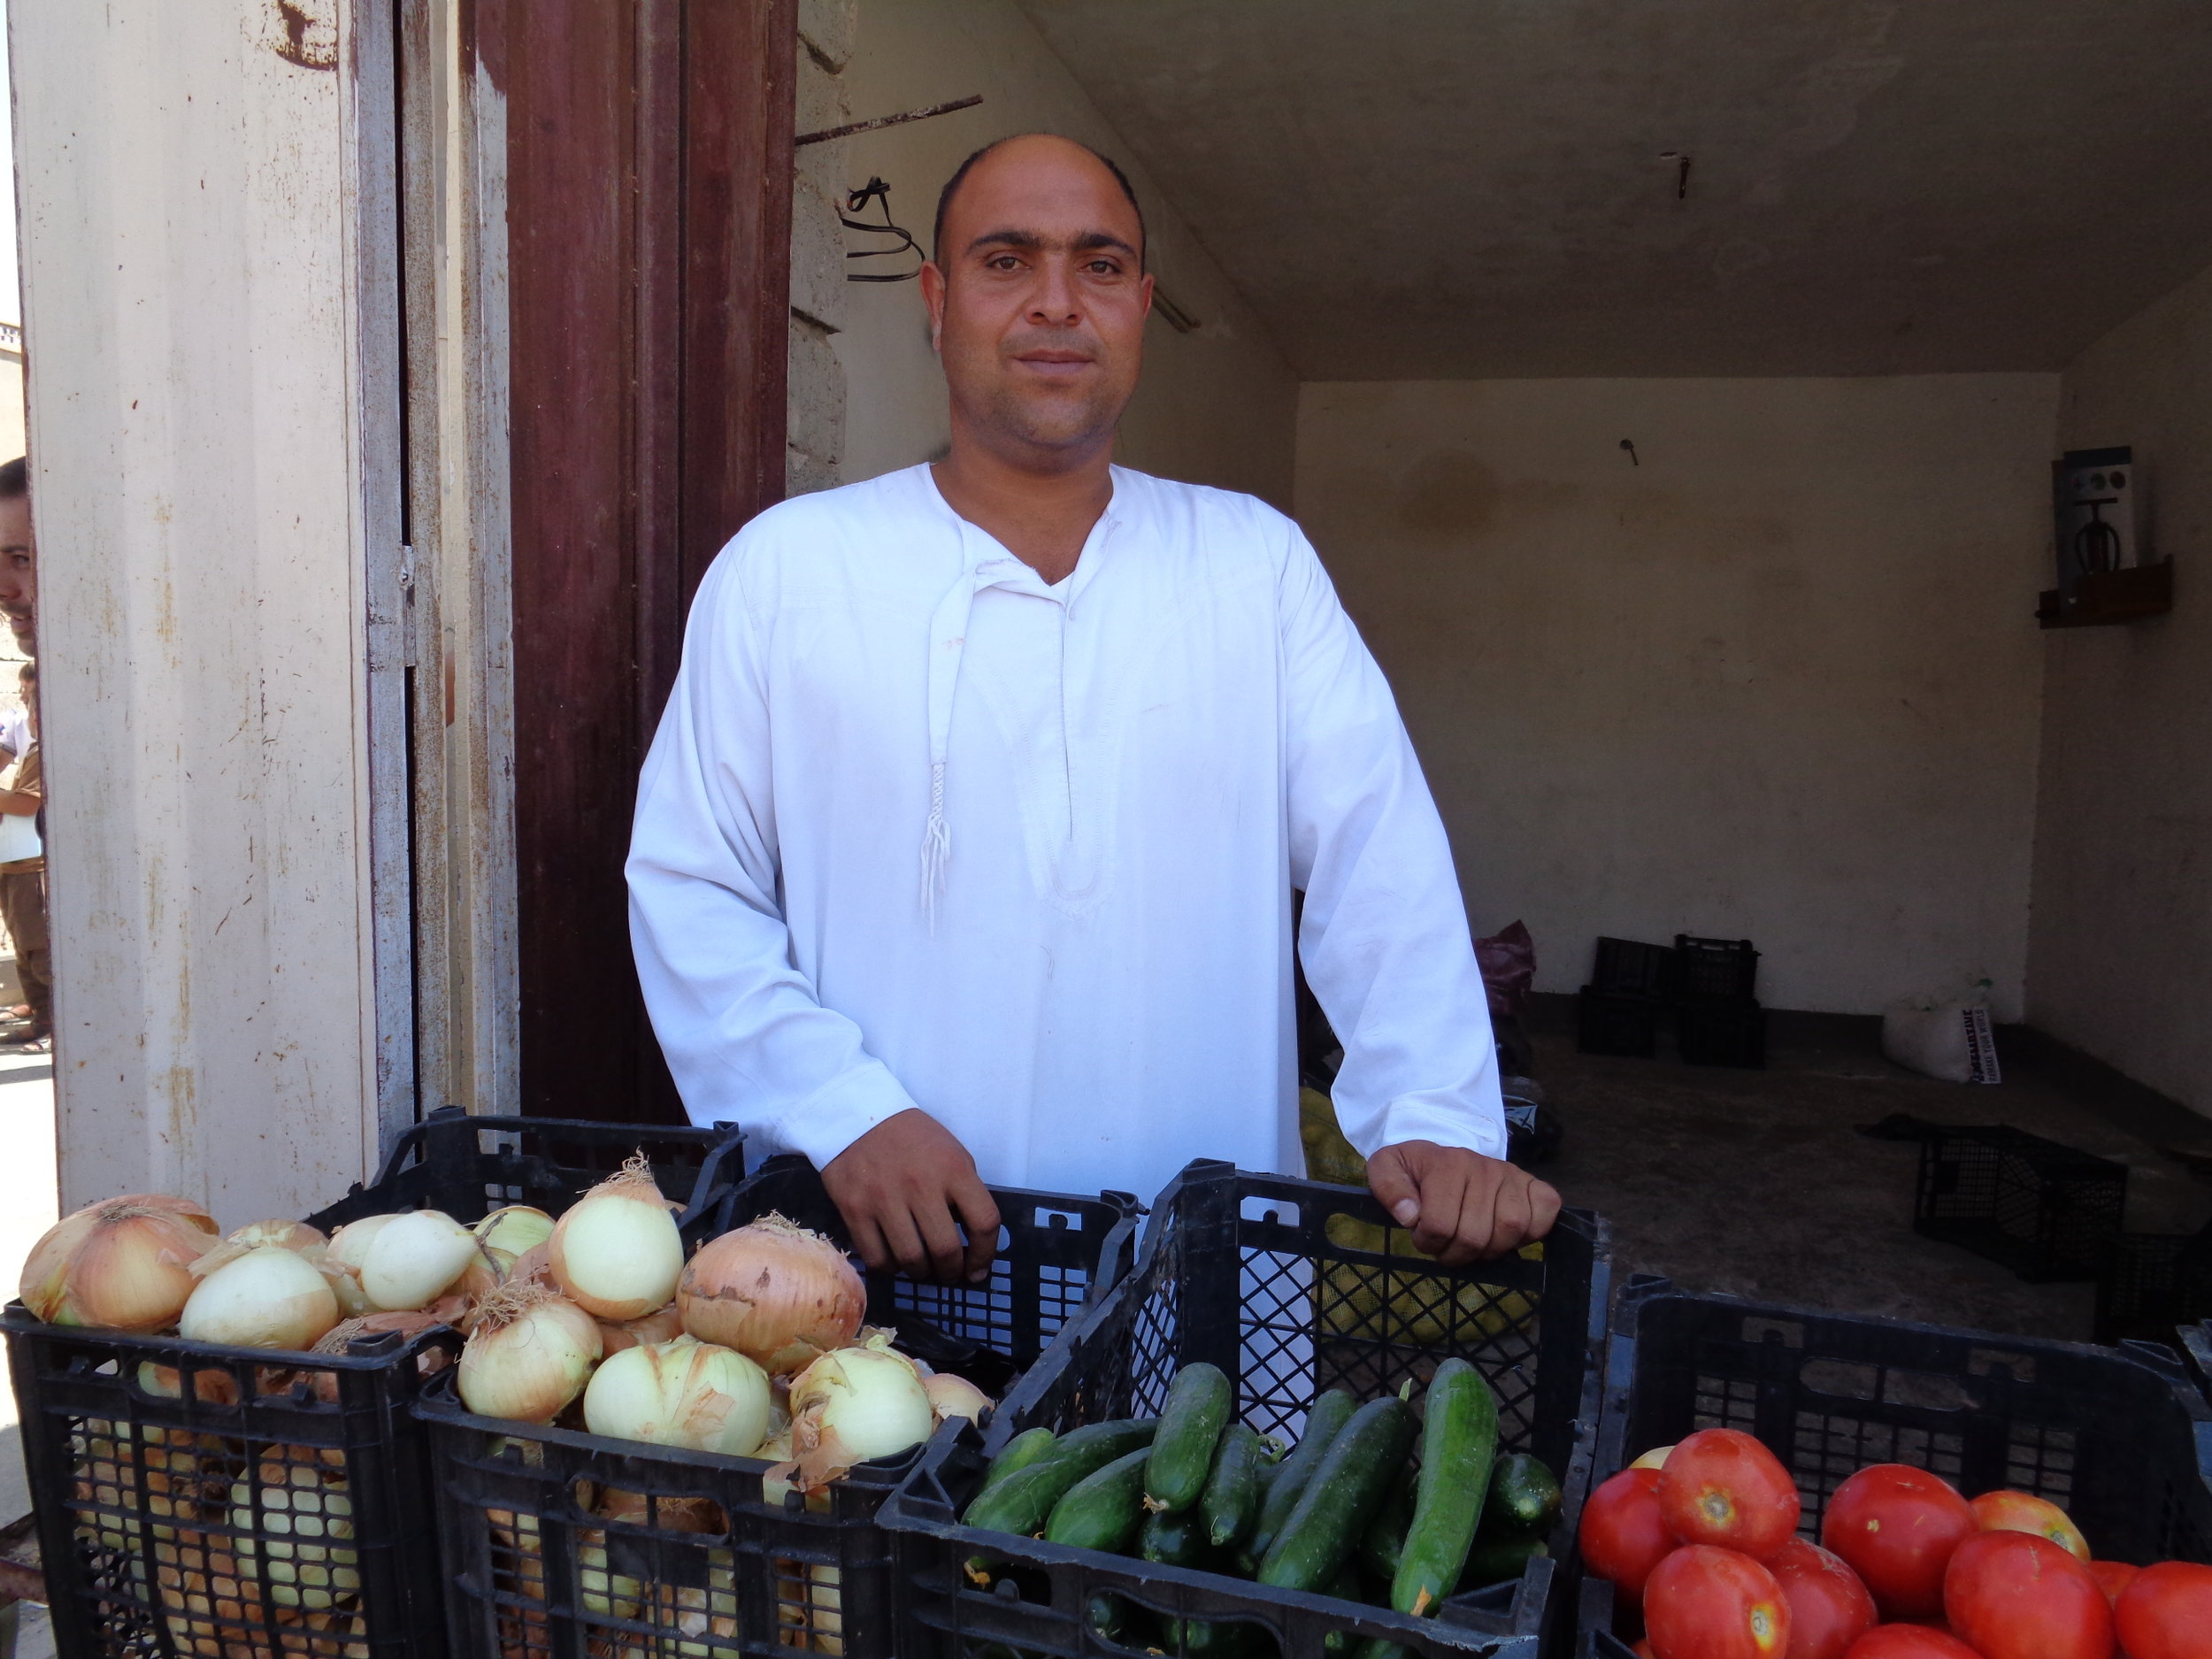 Ahmed* told RI he suffered more than 40 shrapnel wounds after an airstrike hit his home in 2015. He lived as an IDP for more than a year and could not afford proper medical care for himself or school fees for his children. Now he is trying to get back on his feet by selling produce to returning families.